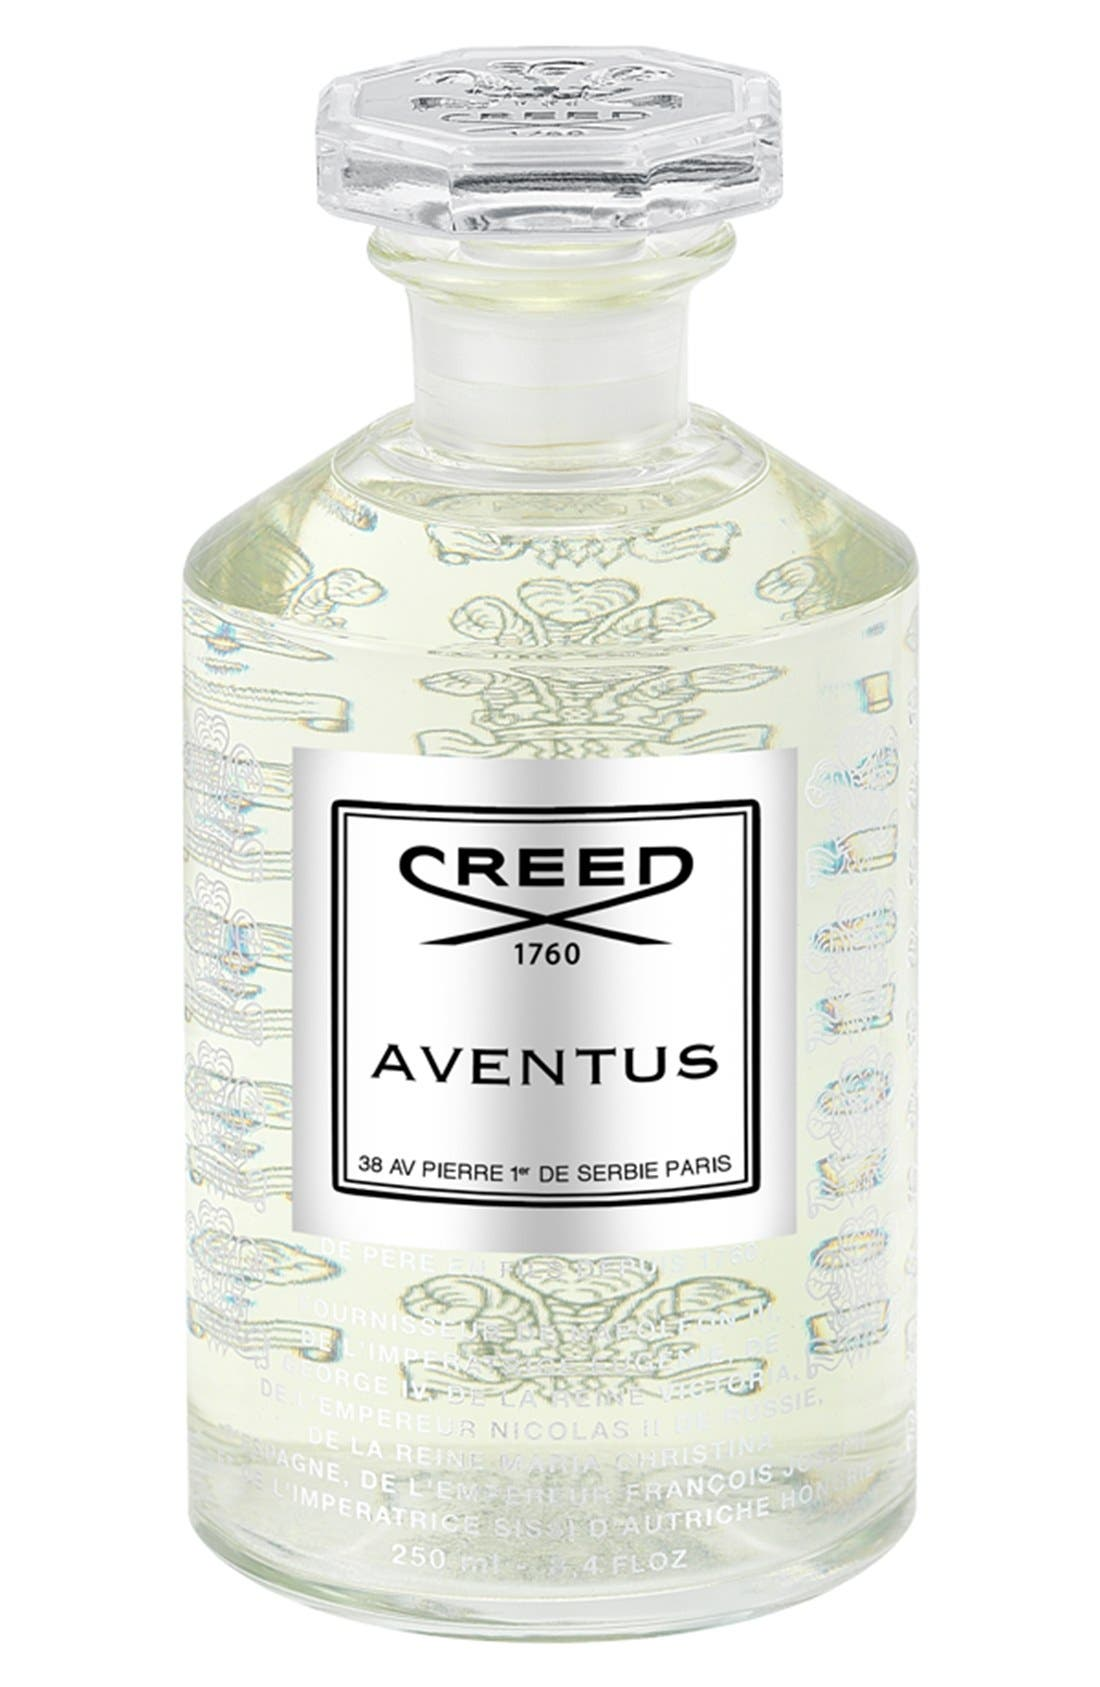 Creed 'Aventus' Fragrance (8.4 oz.)